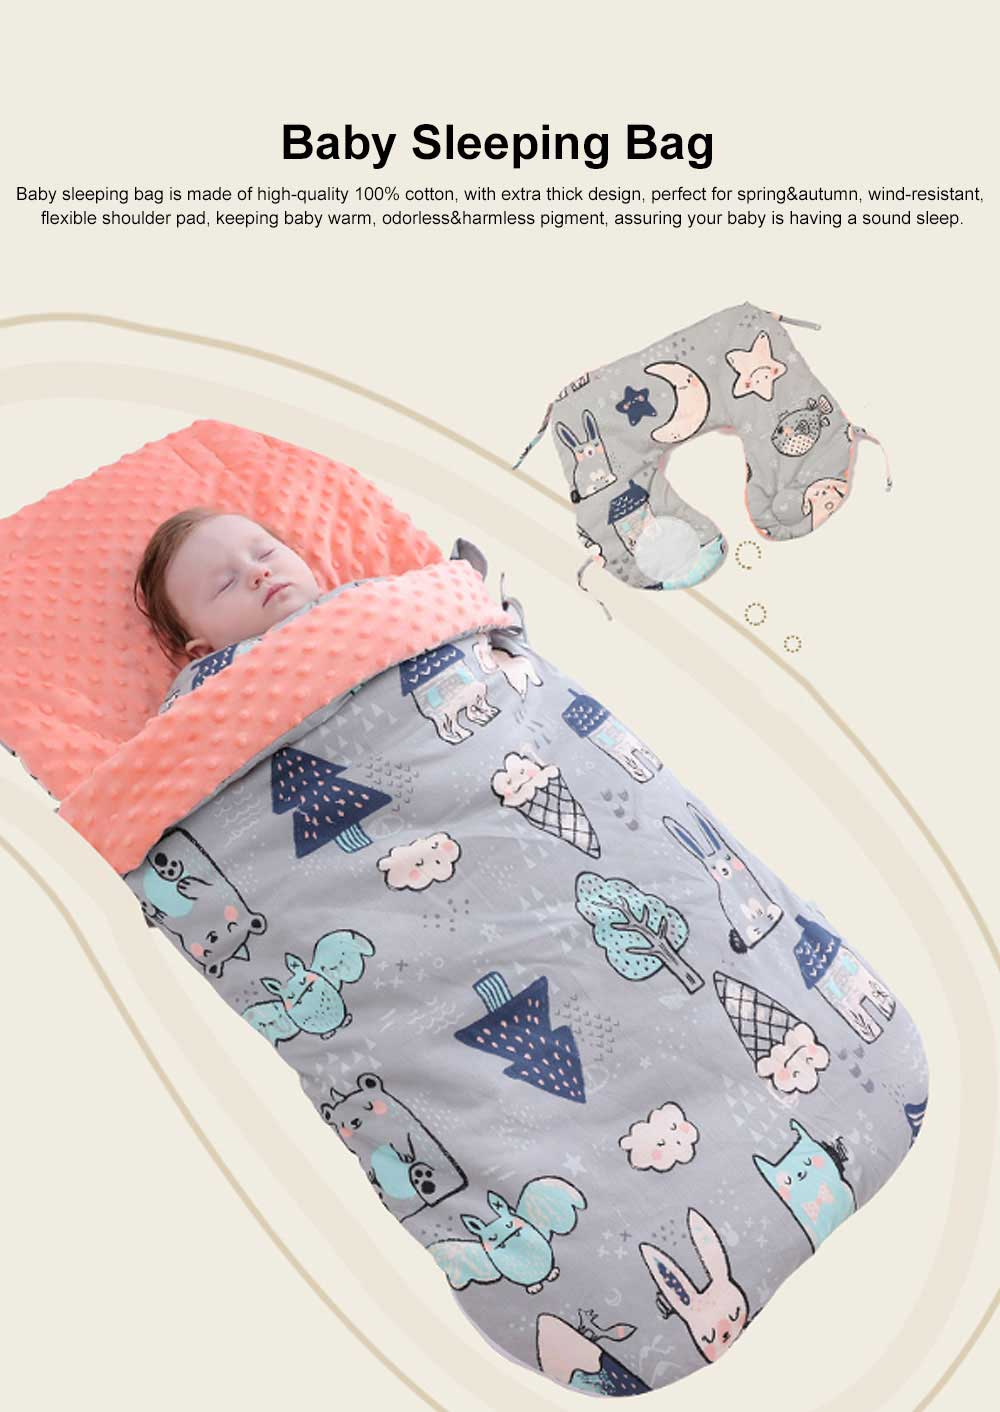 Baby Sleeping Bag Spring Autumn Extra Thick Baby Sleeping Sack, Twitching-safe 100% Cotton Newborn Baby Sleeping Fleabag 0